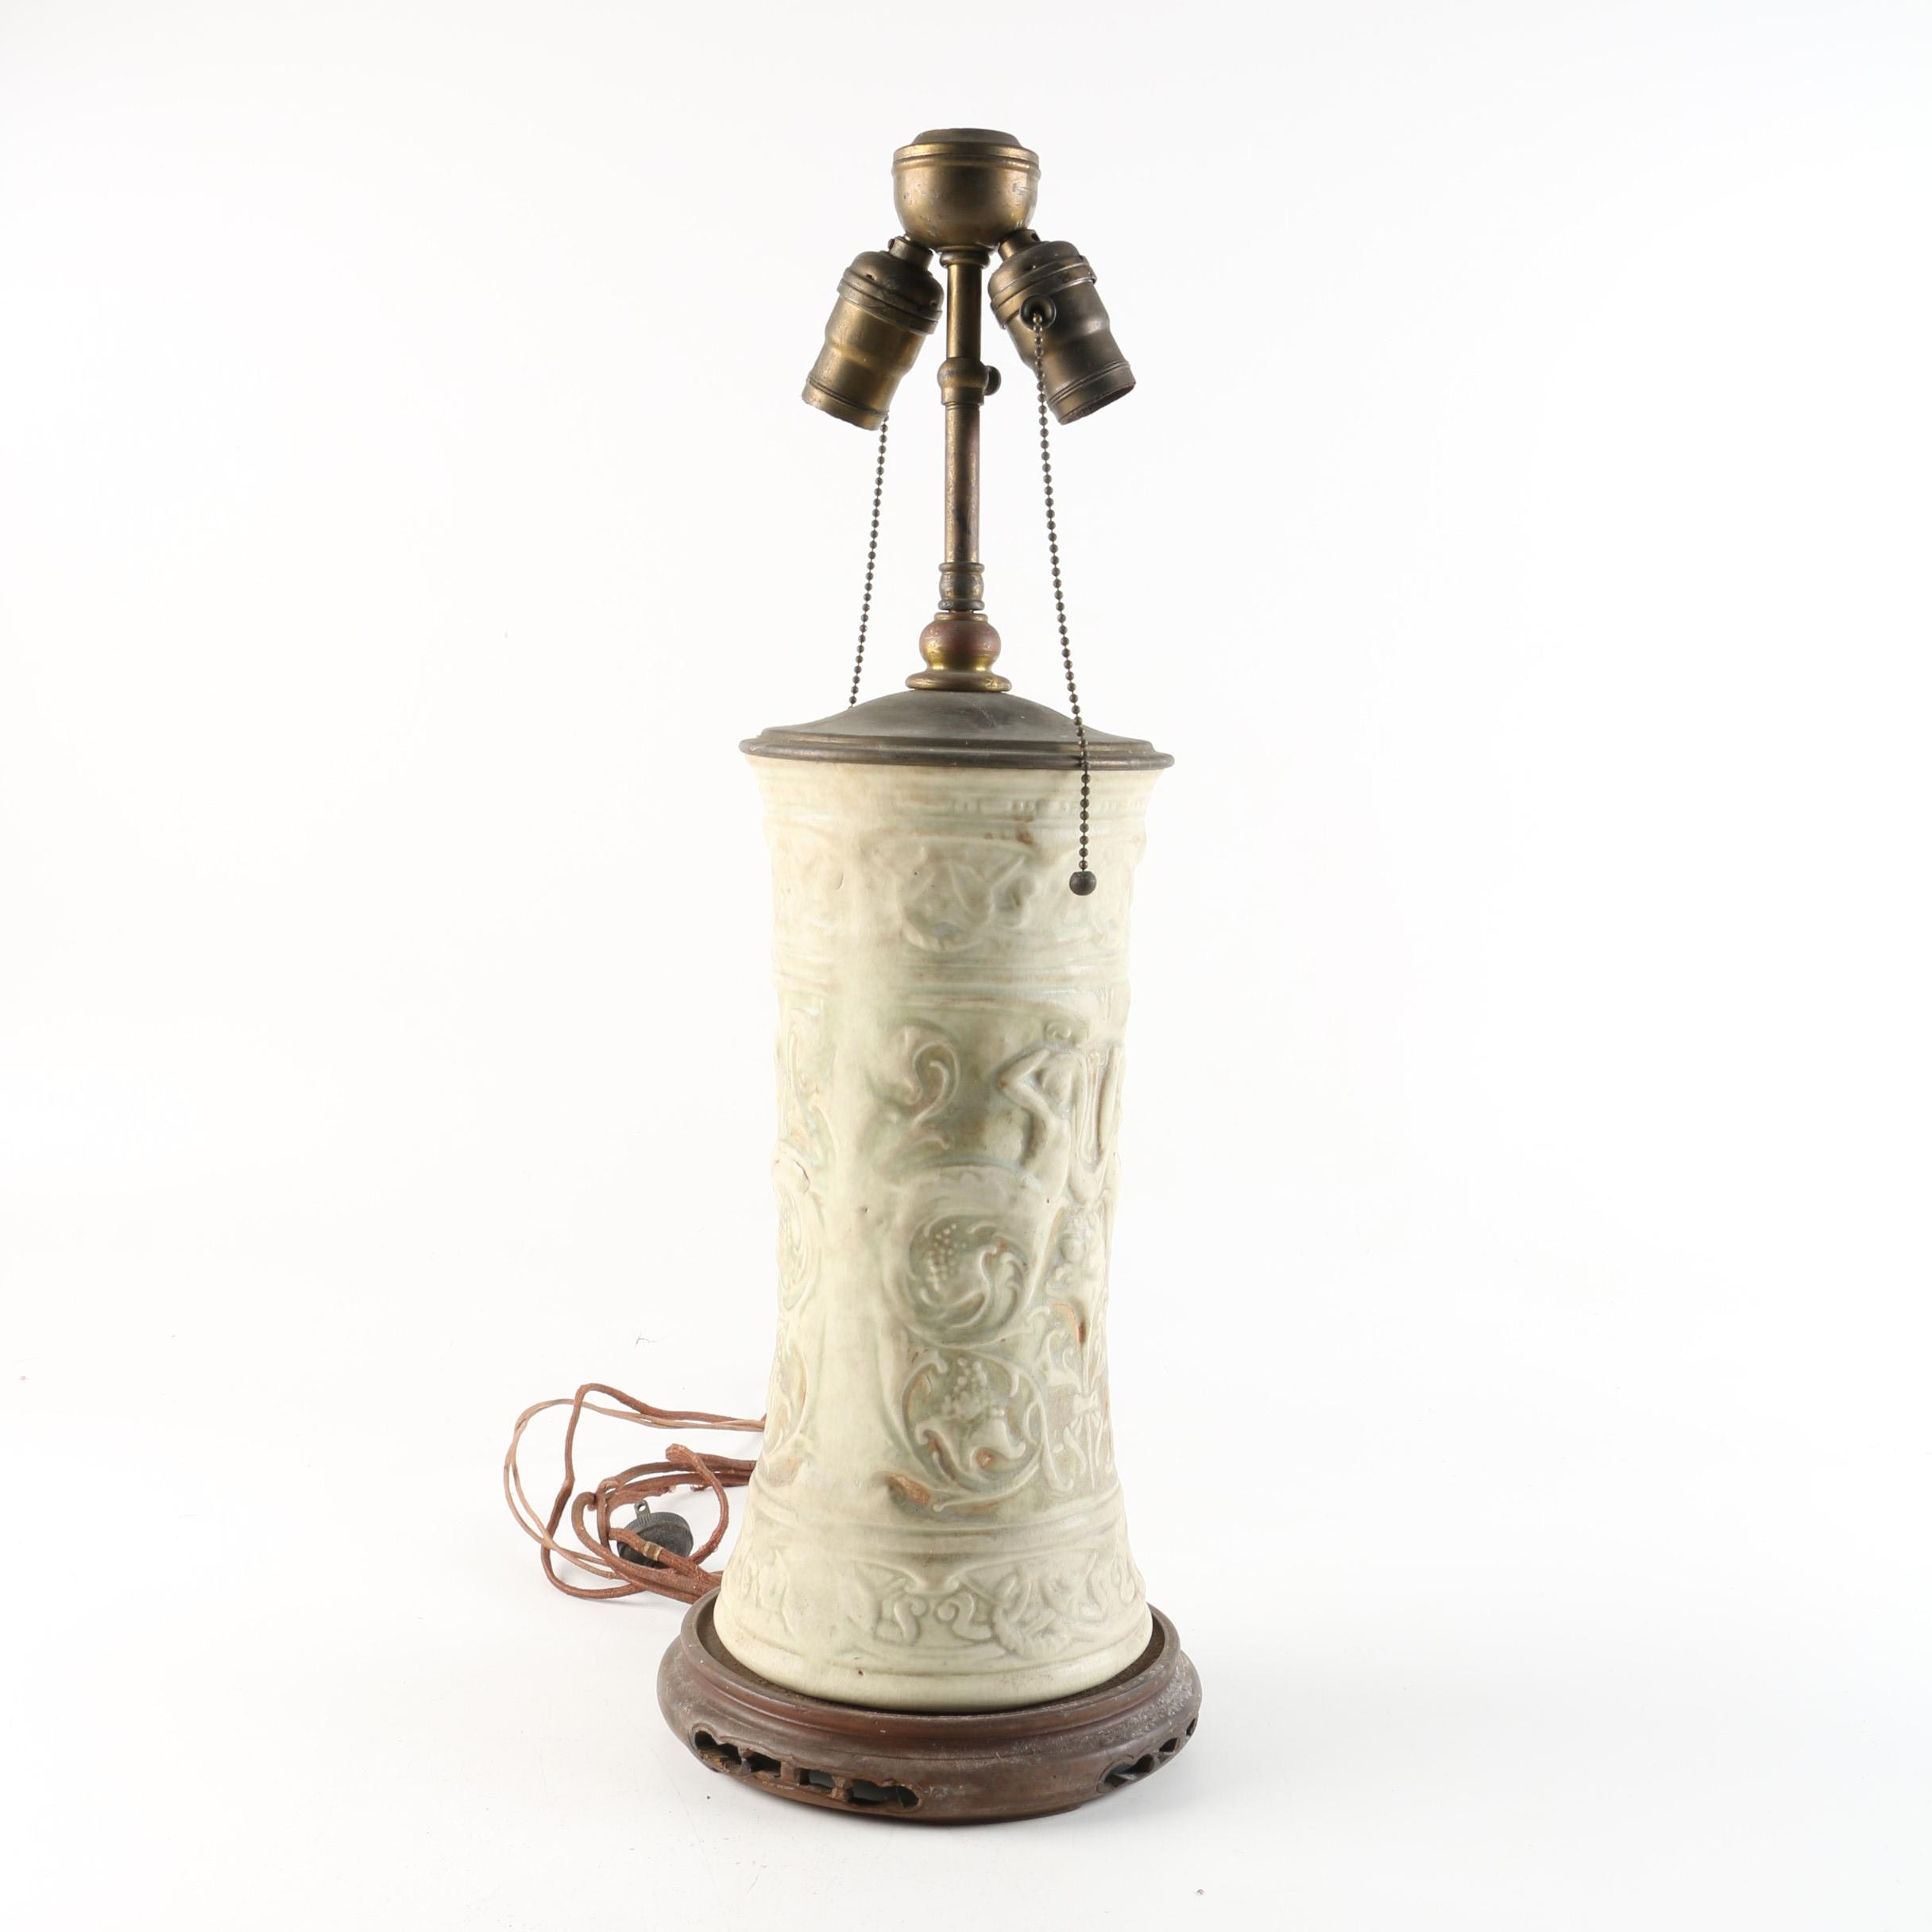 Art Nouveau Style Embossed Ceramic Table Lamp with Wooden Base